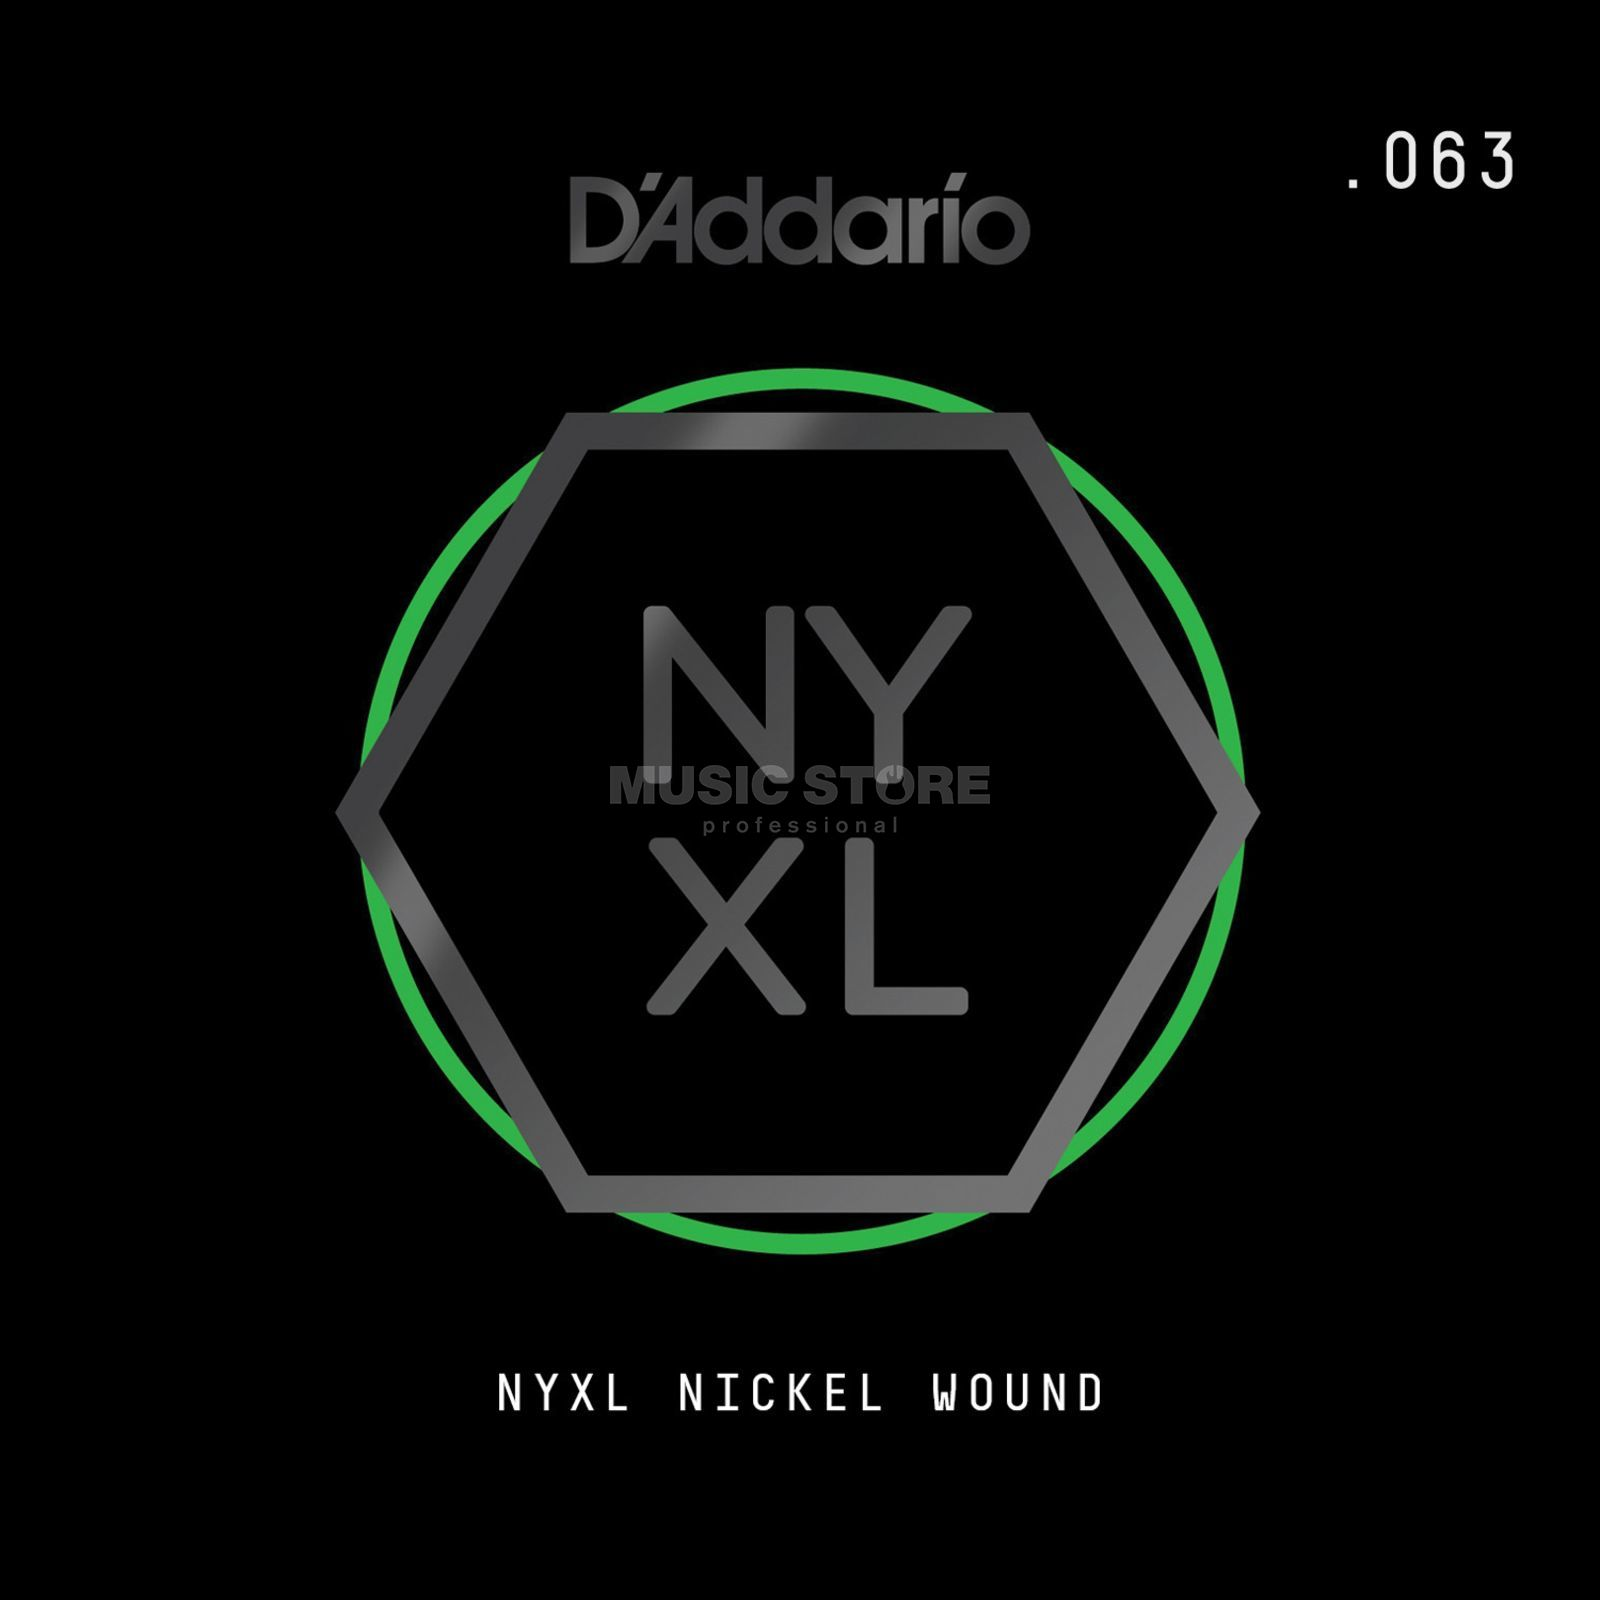 D'Addario NYNW063 Single String Nickel Wound Product Image